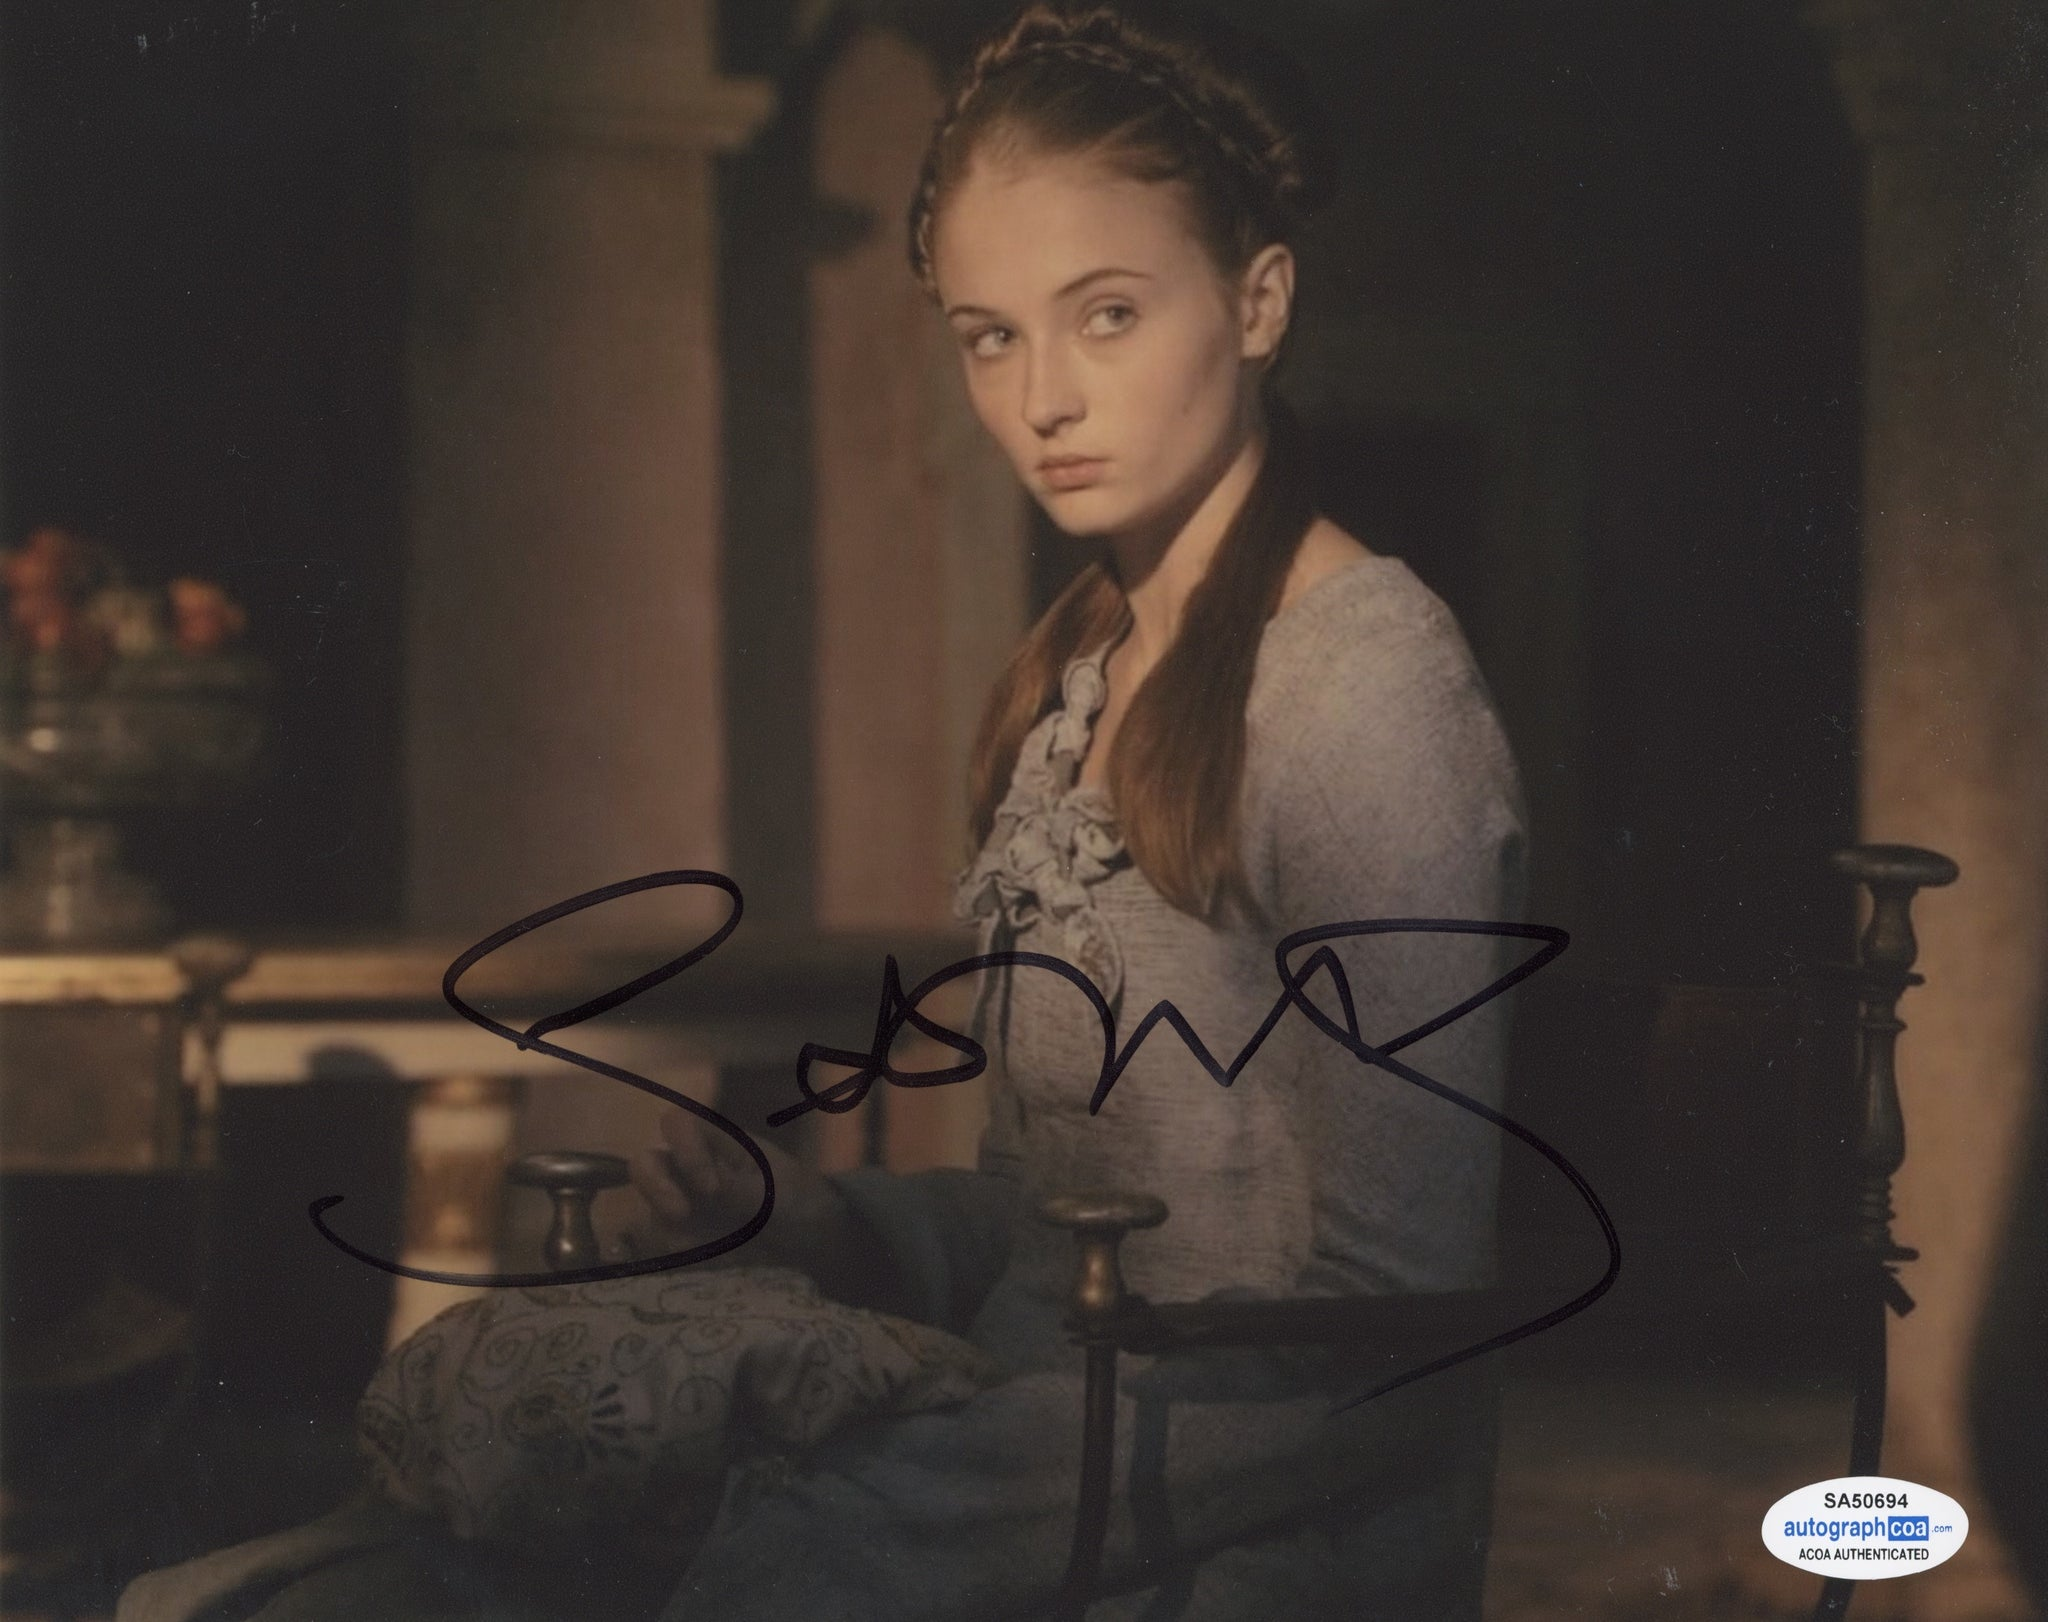 Sophie Turner Sexy Game of Thrones Signed autograph 8x10 Photo ACOA